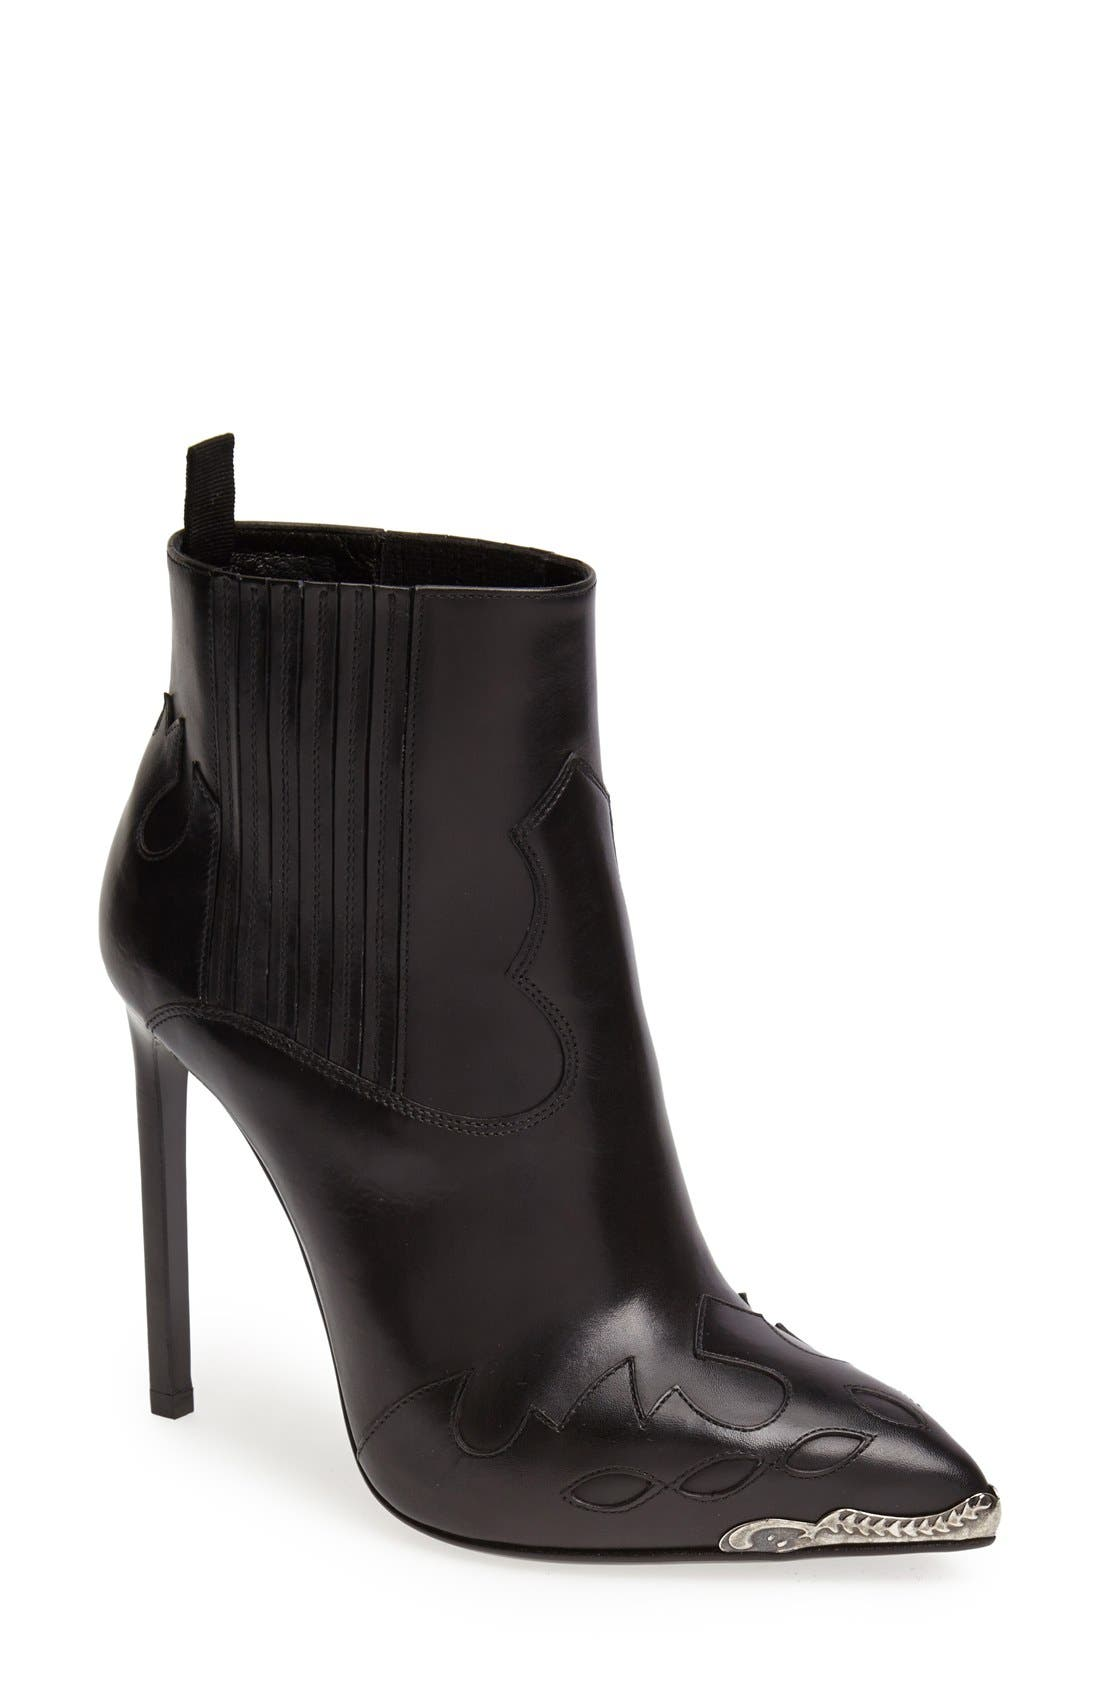 Main Image - Saint Laurent Metallic Toe Bootie (Women)